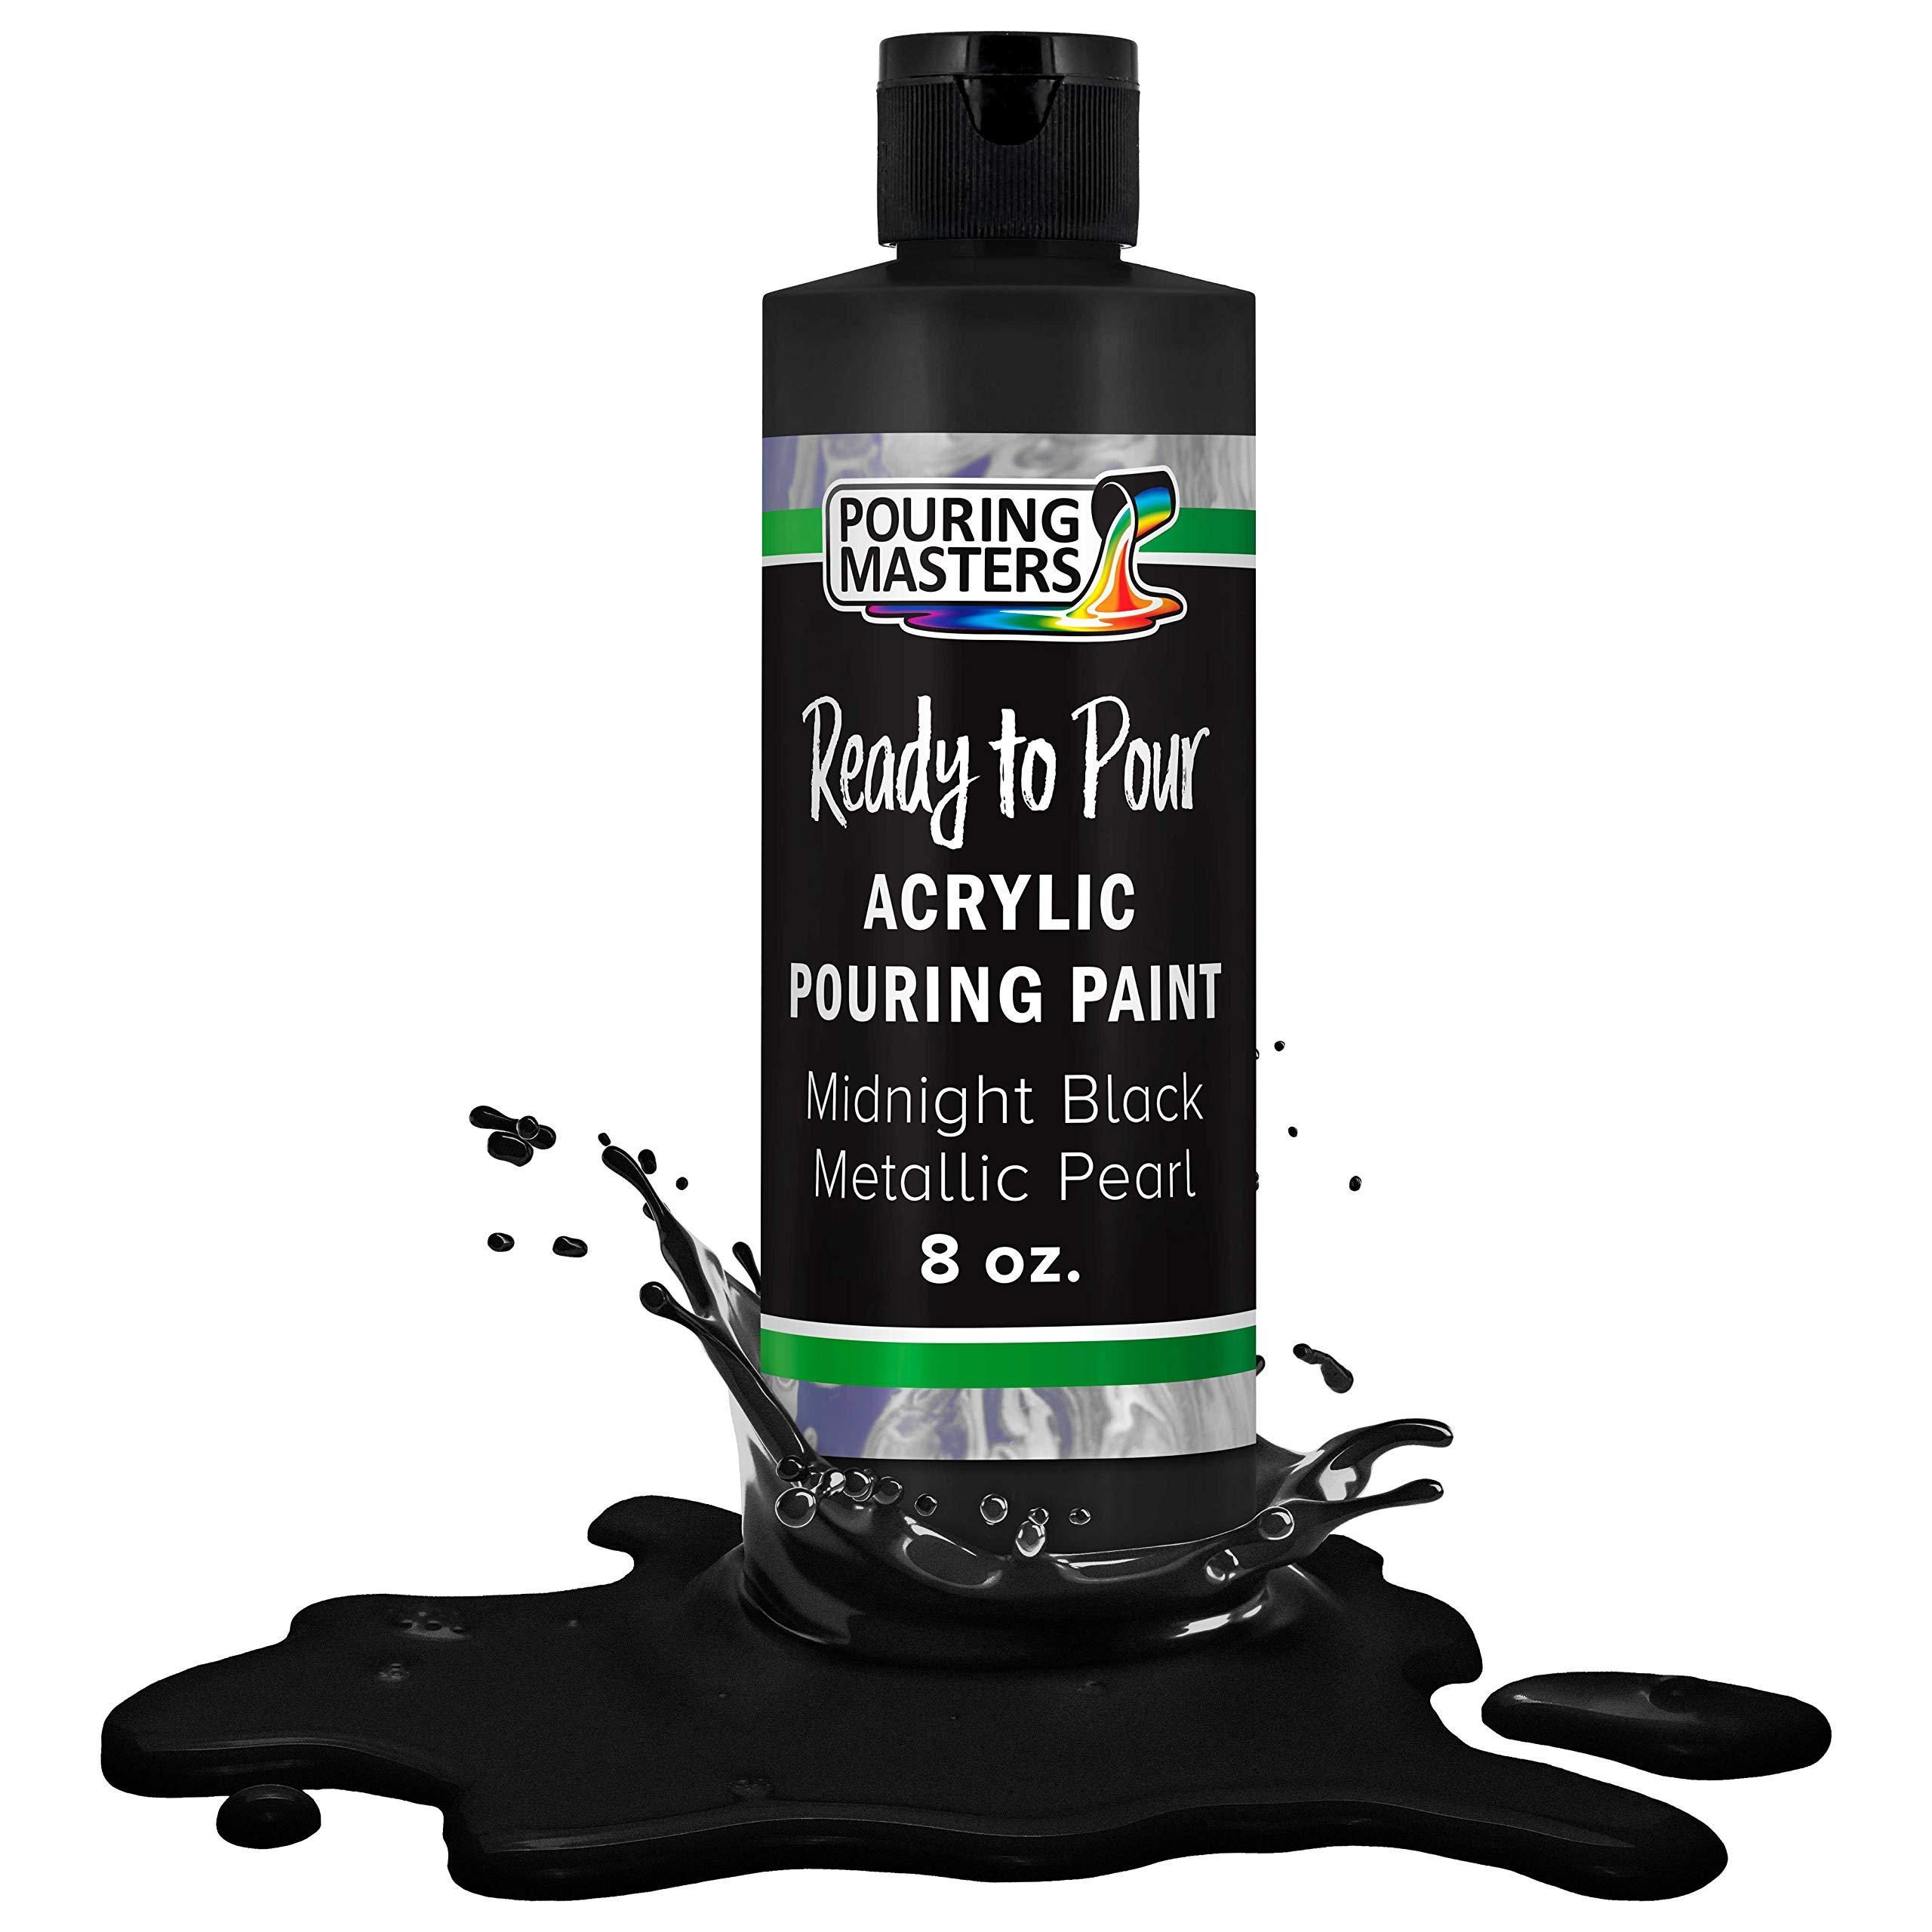 Pouring Masters Midnight Black Metallic Pearl Acrylic Ready to Pour Pouring Paint – Premium 8-Ounce Pre-Mixed Water-Based - for Canvas, Wood, Paper, Crafts, Tile, Rocks and More